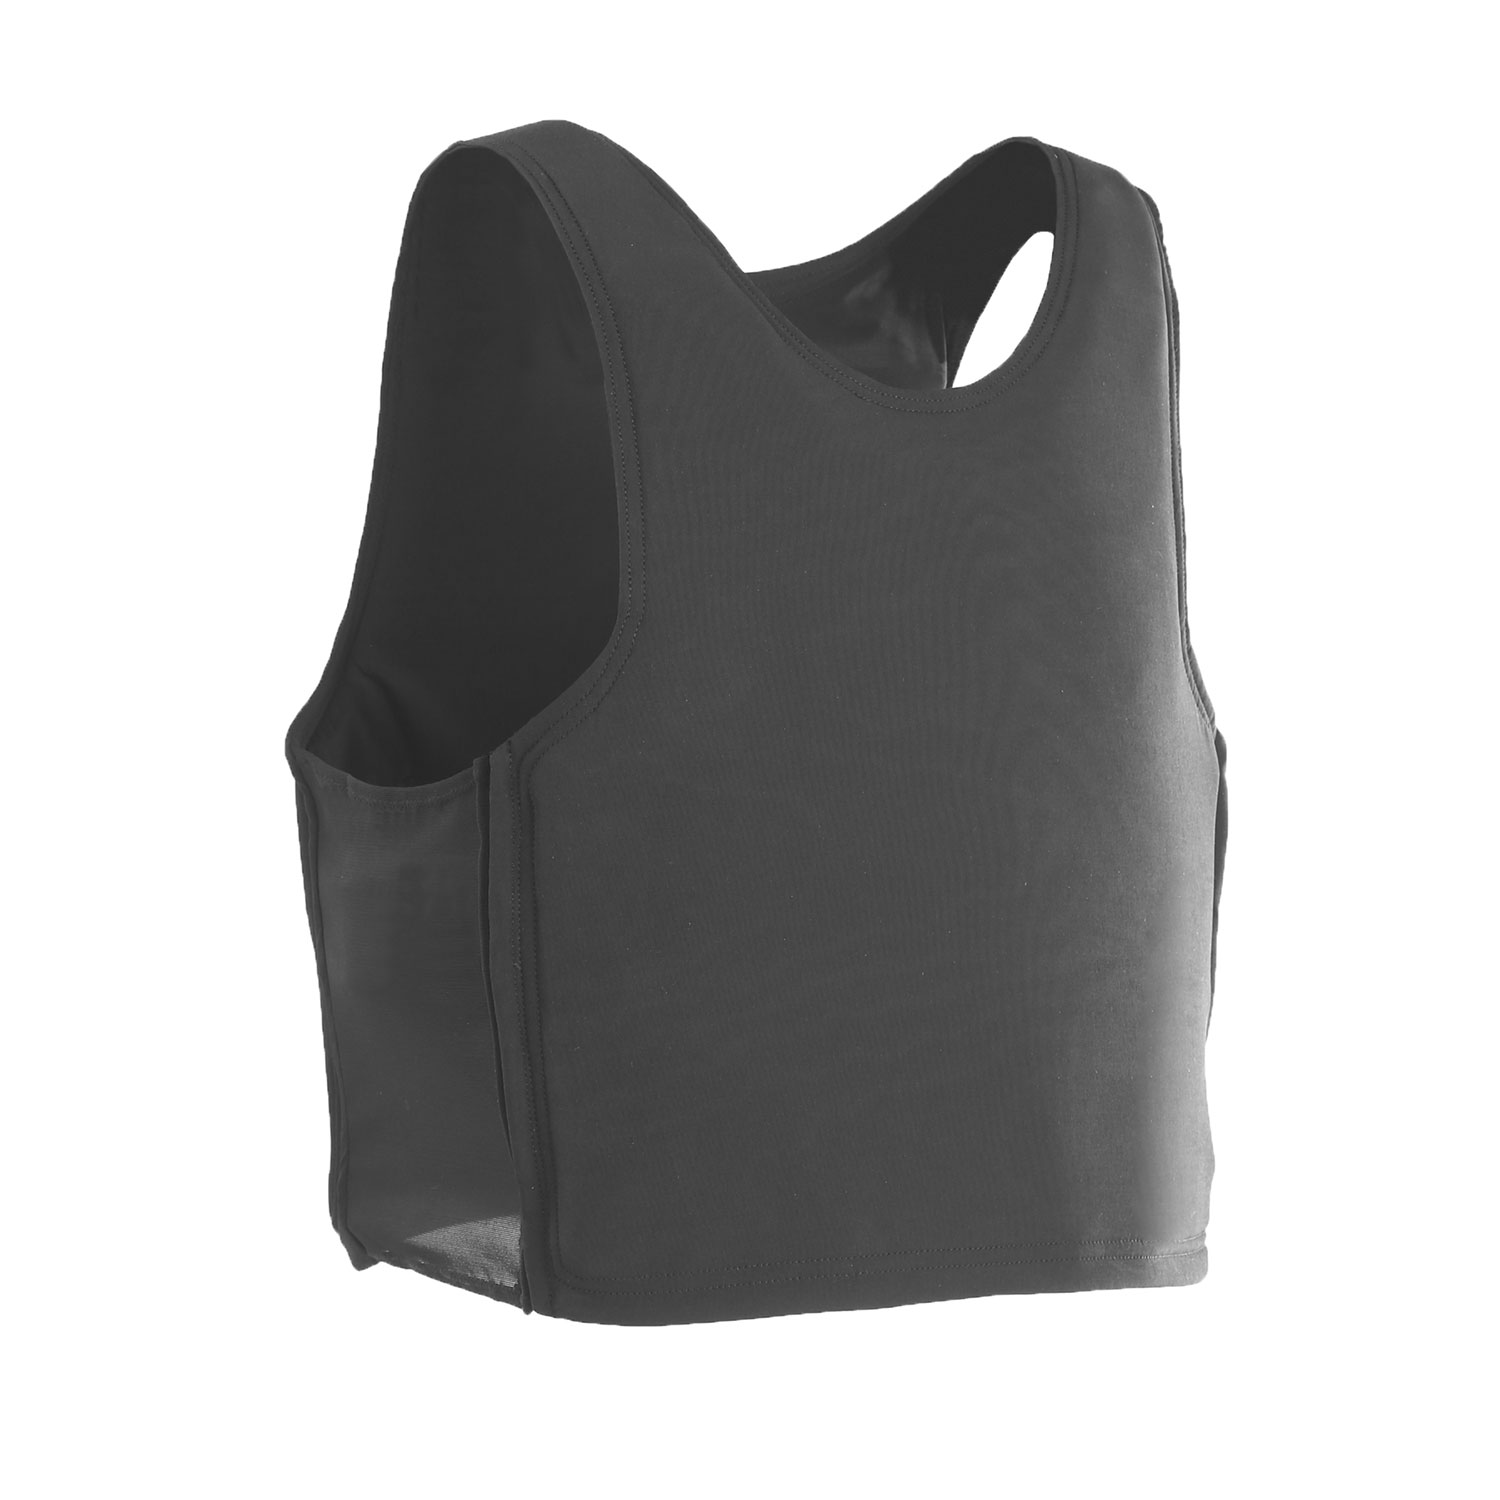 Point Blank Executive Body Armor and Carrier Level AXII